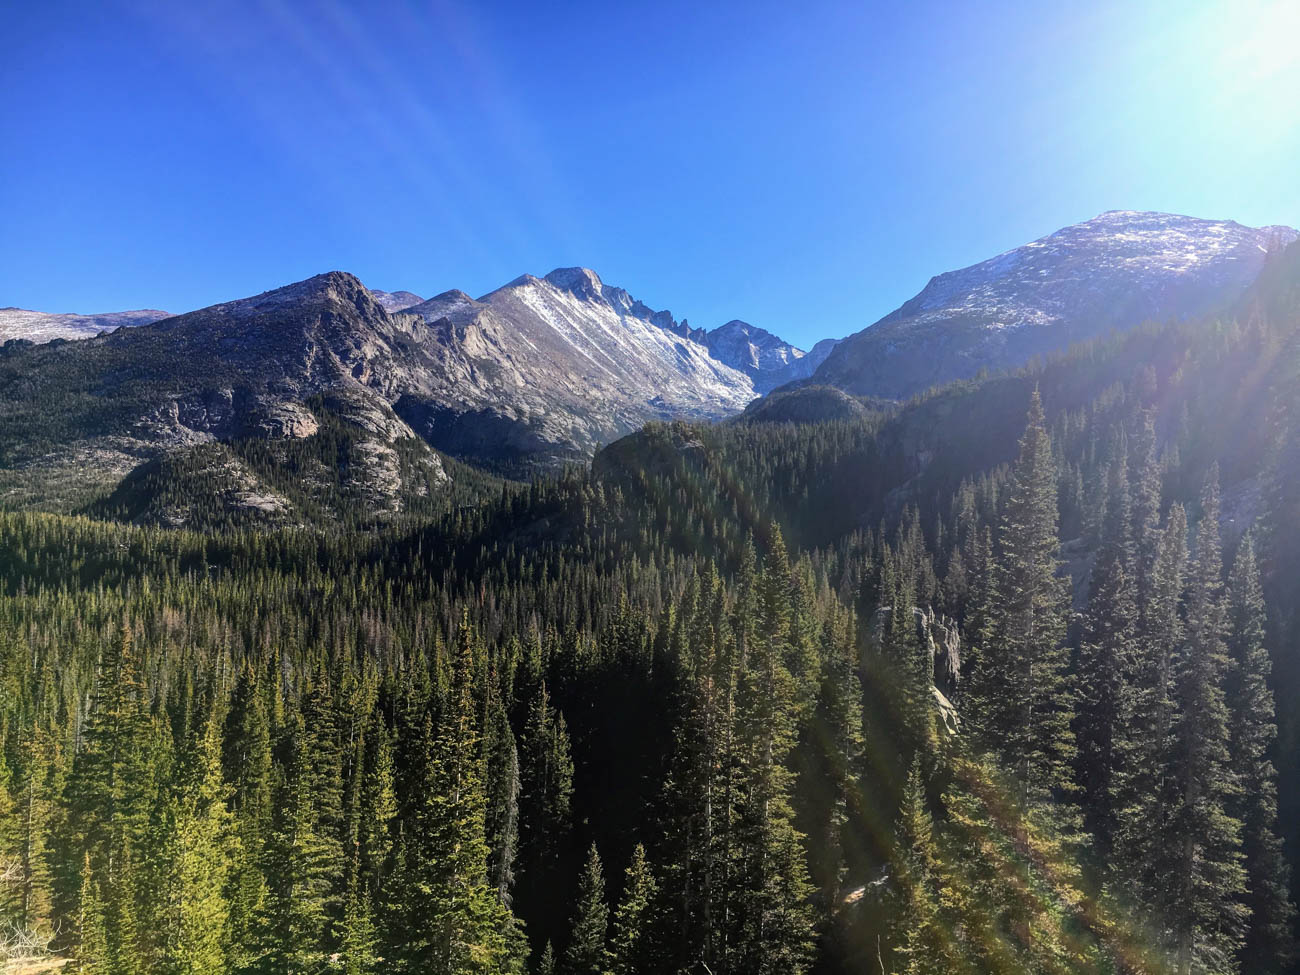 Rocky Mountain National Park is 72 miles from downtown Denver and features 358 square miles of breathtaking scenery with more than 60 mountain peaks. / Image: Di Minardi // Published: 1.18.19